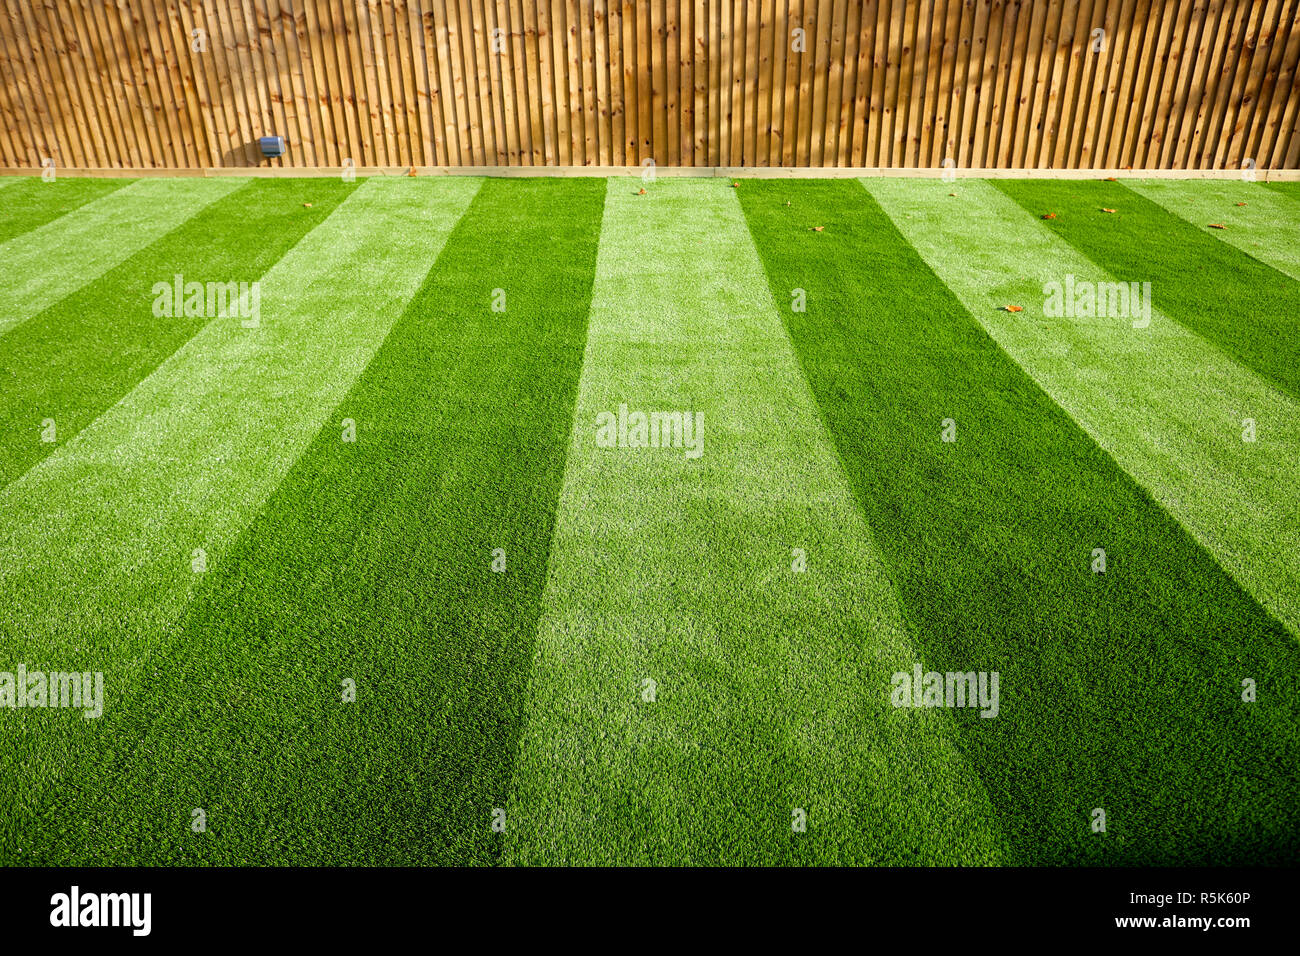 maintenance free artificial turf  lawn a modern synthetic grass carpet with stripes - Stock Image